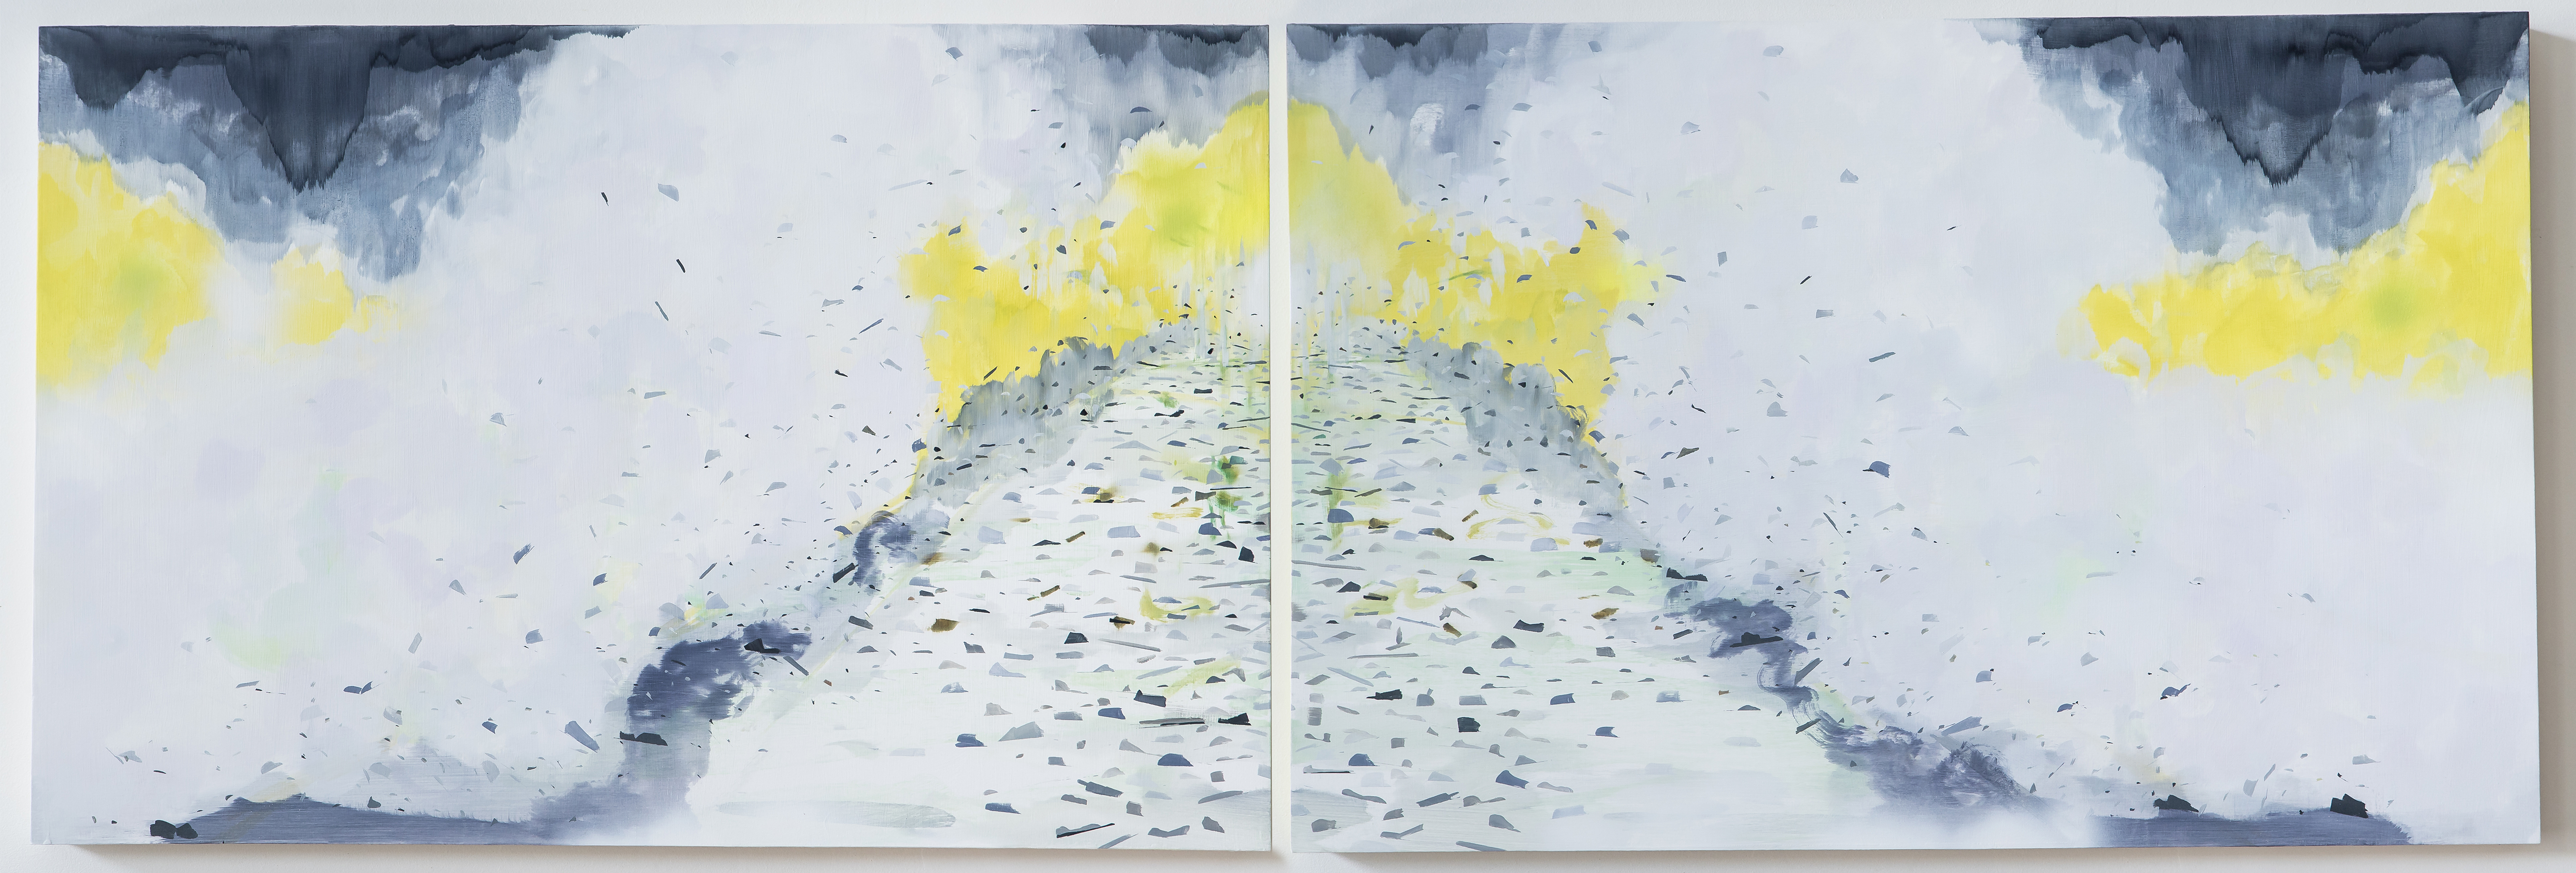 Two-part painting of waves crashing into the shore, debris flying. Diptych 24 x 73 inches, each panel is 24 x 36 inches